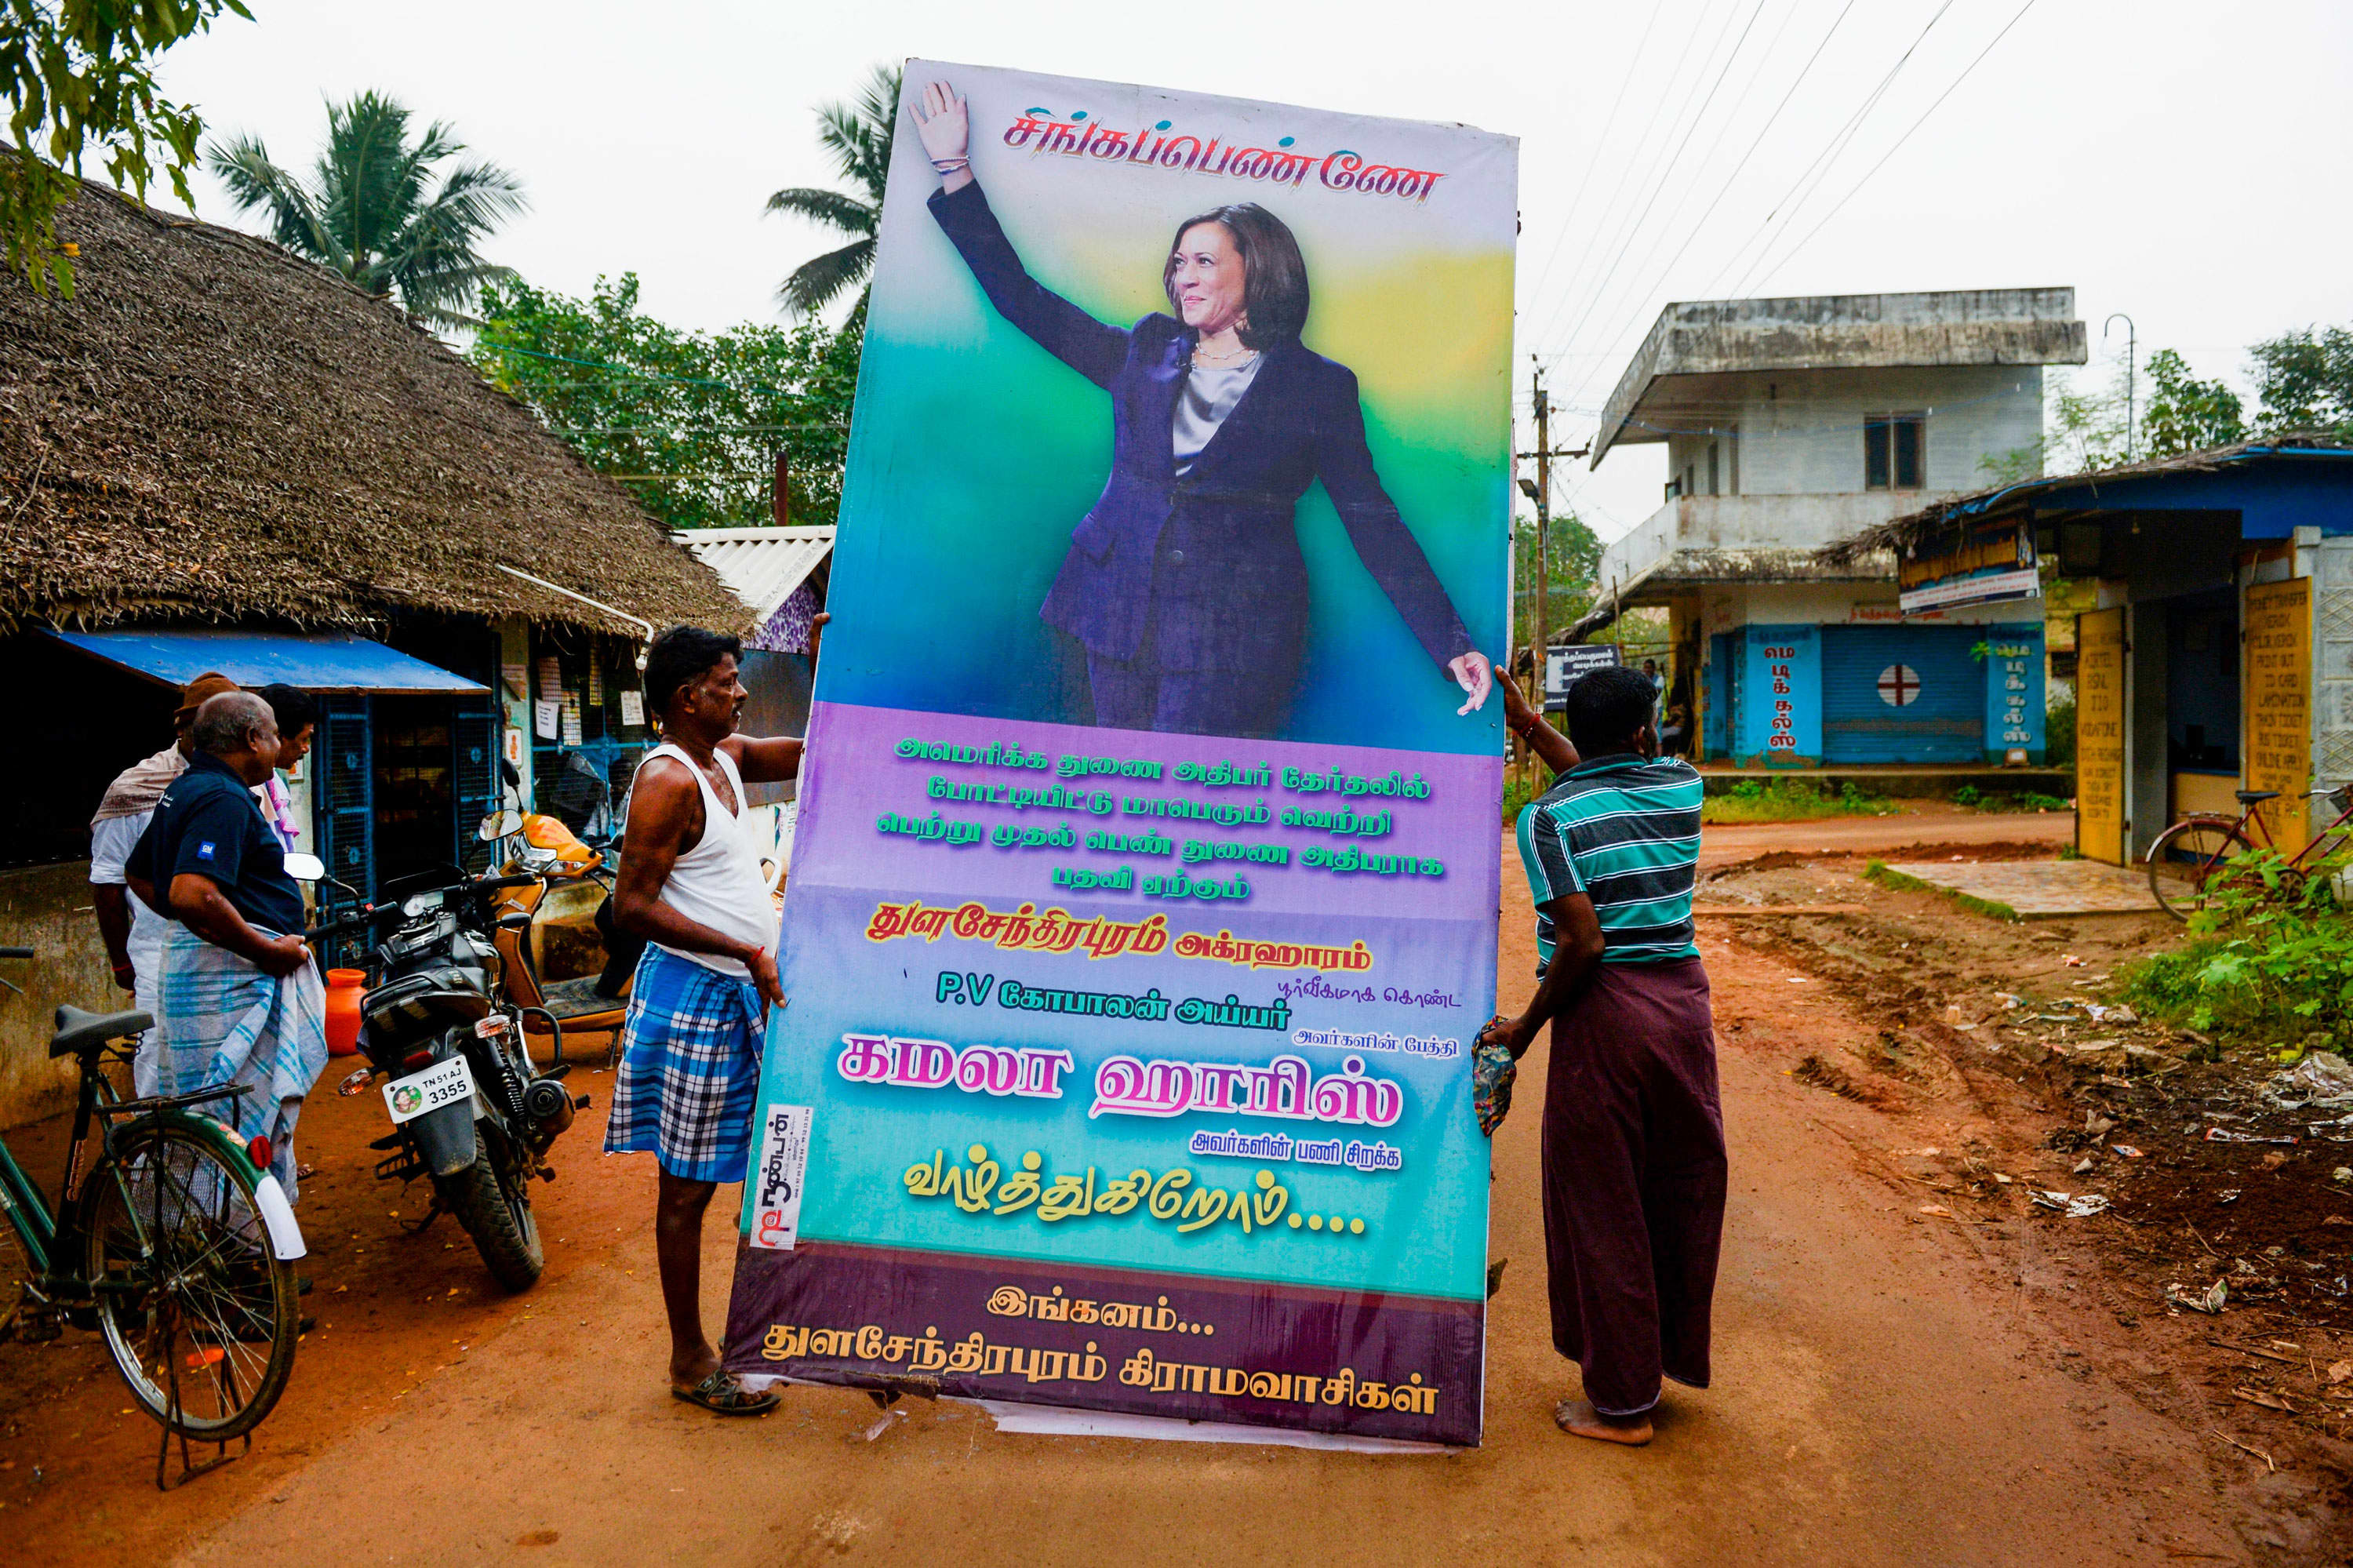 A tiny village in South India celebrates Vice President Kamala Harris with firecrackers and prayers – CNBC